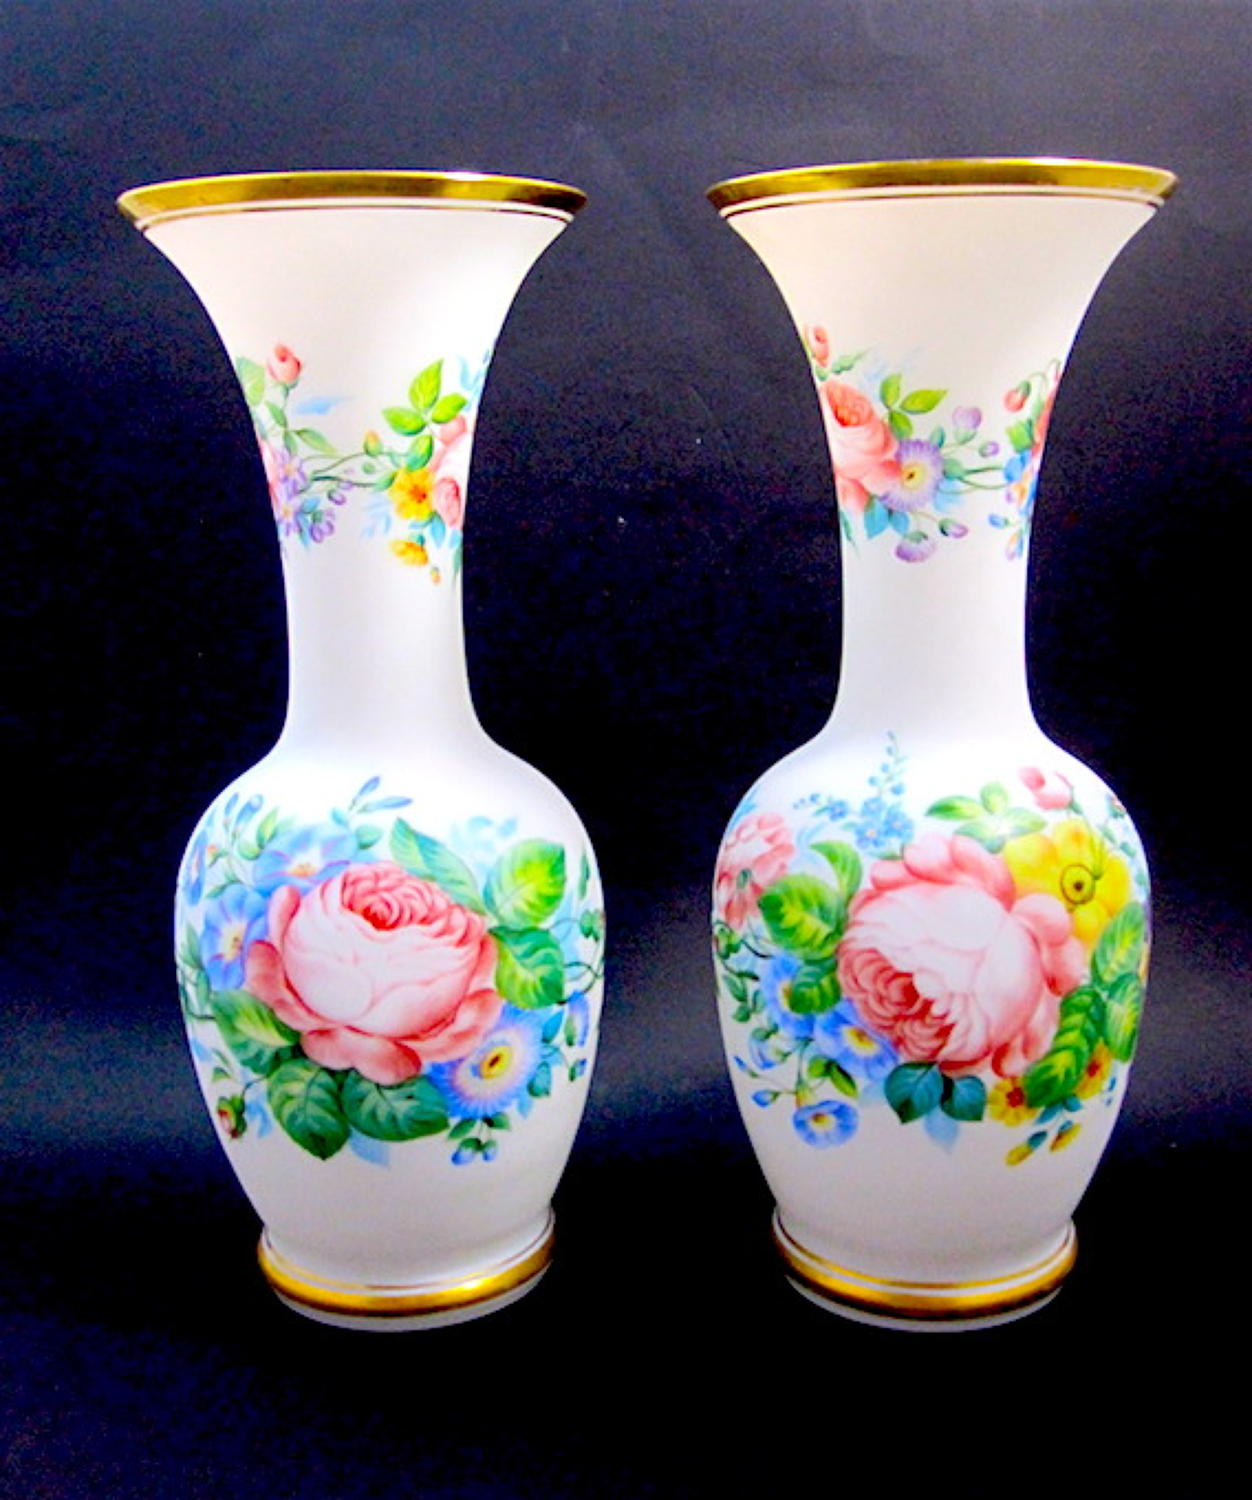 Pair of Antique French Opaline Flower Vases